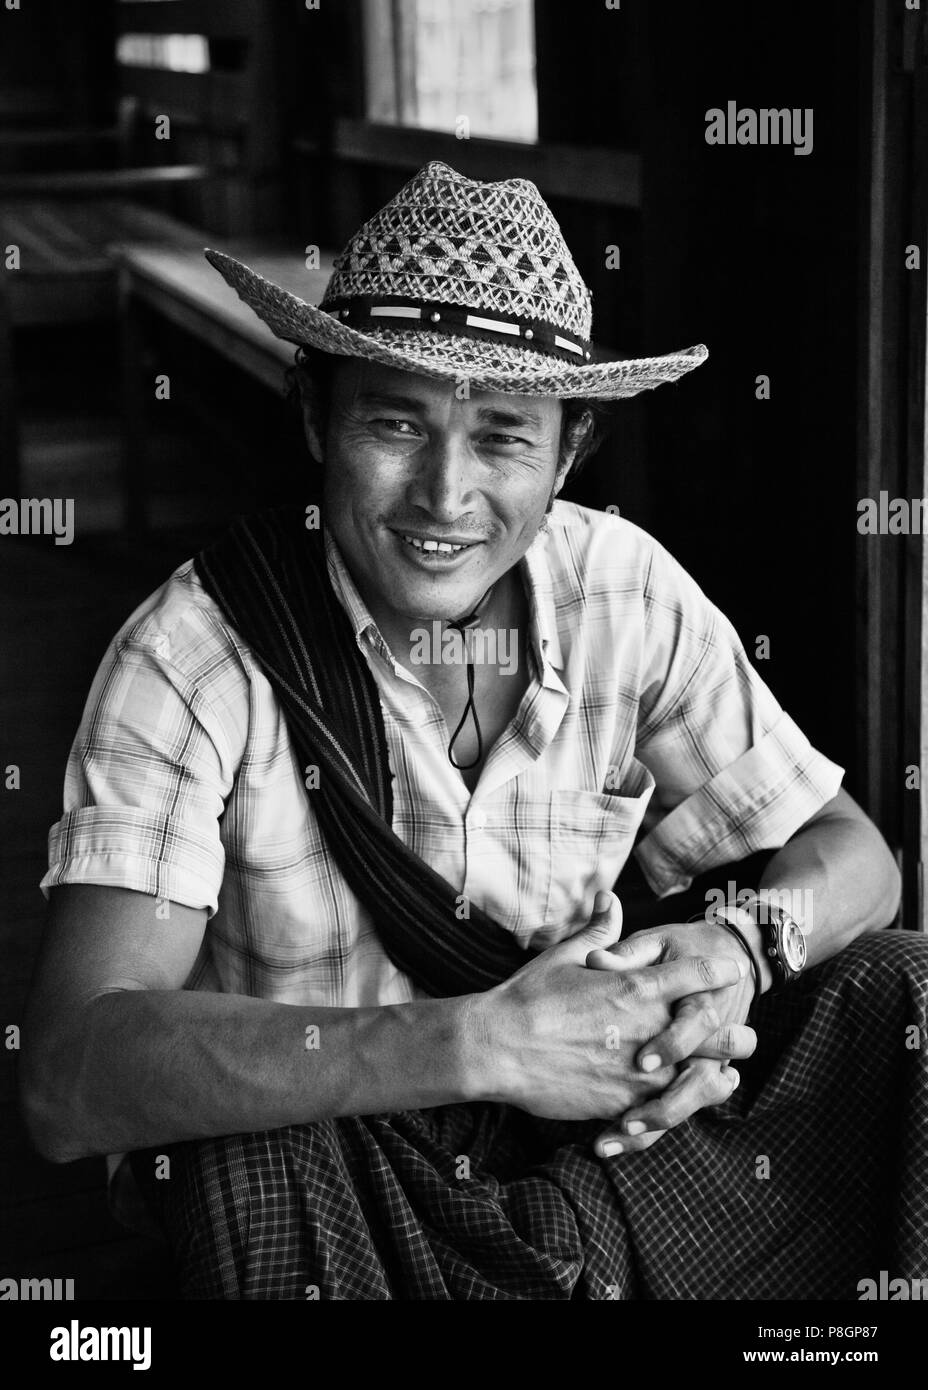 The boatman So - INLE LAKE, MYANMAR - Stock Image